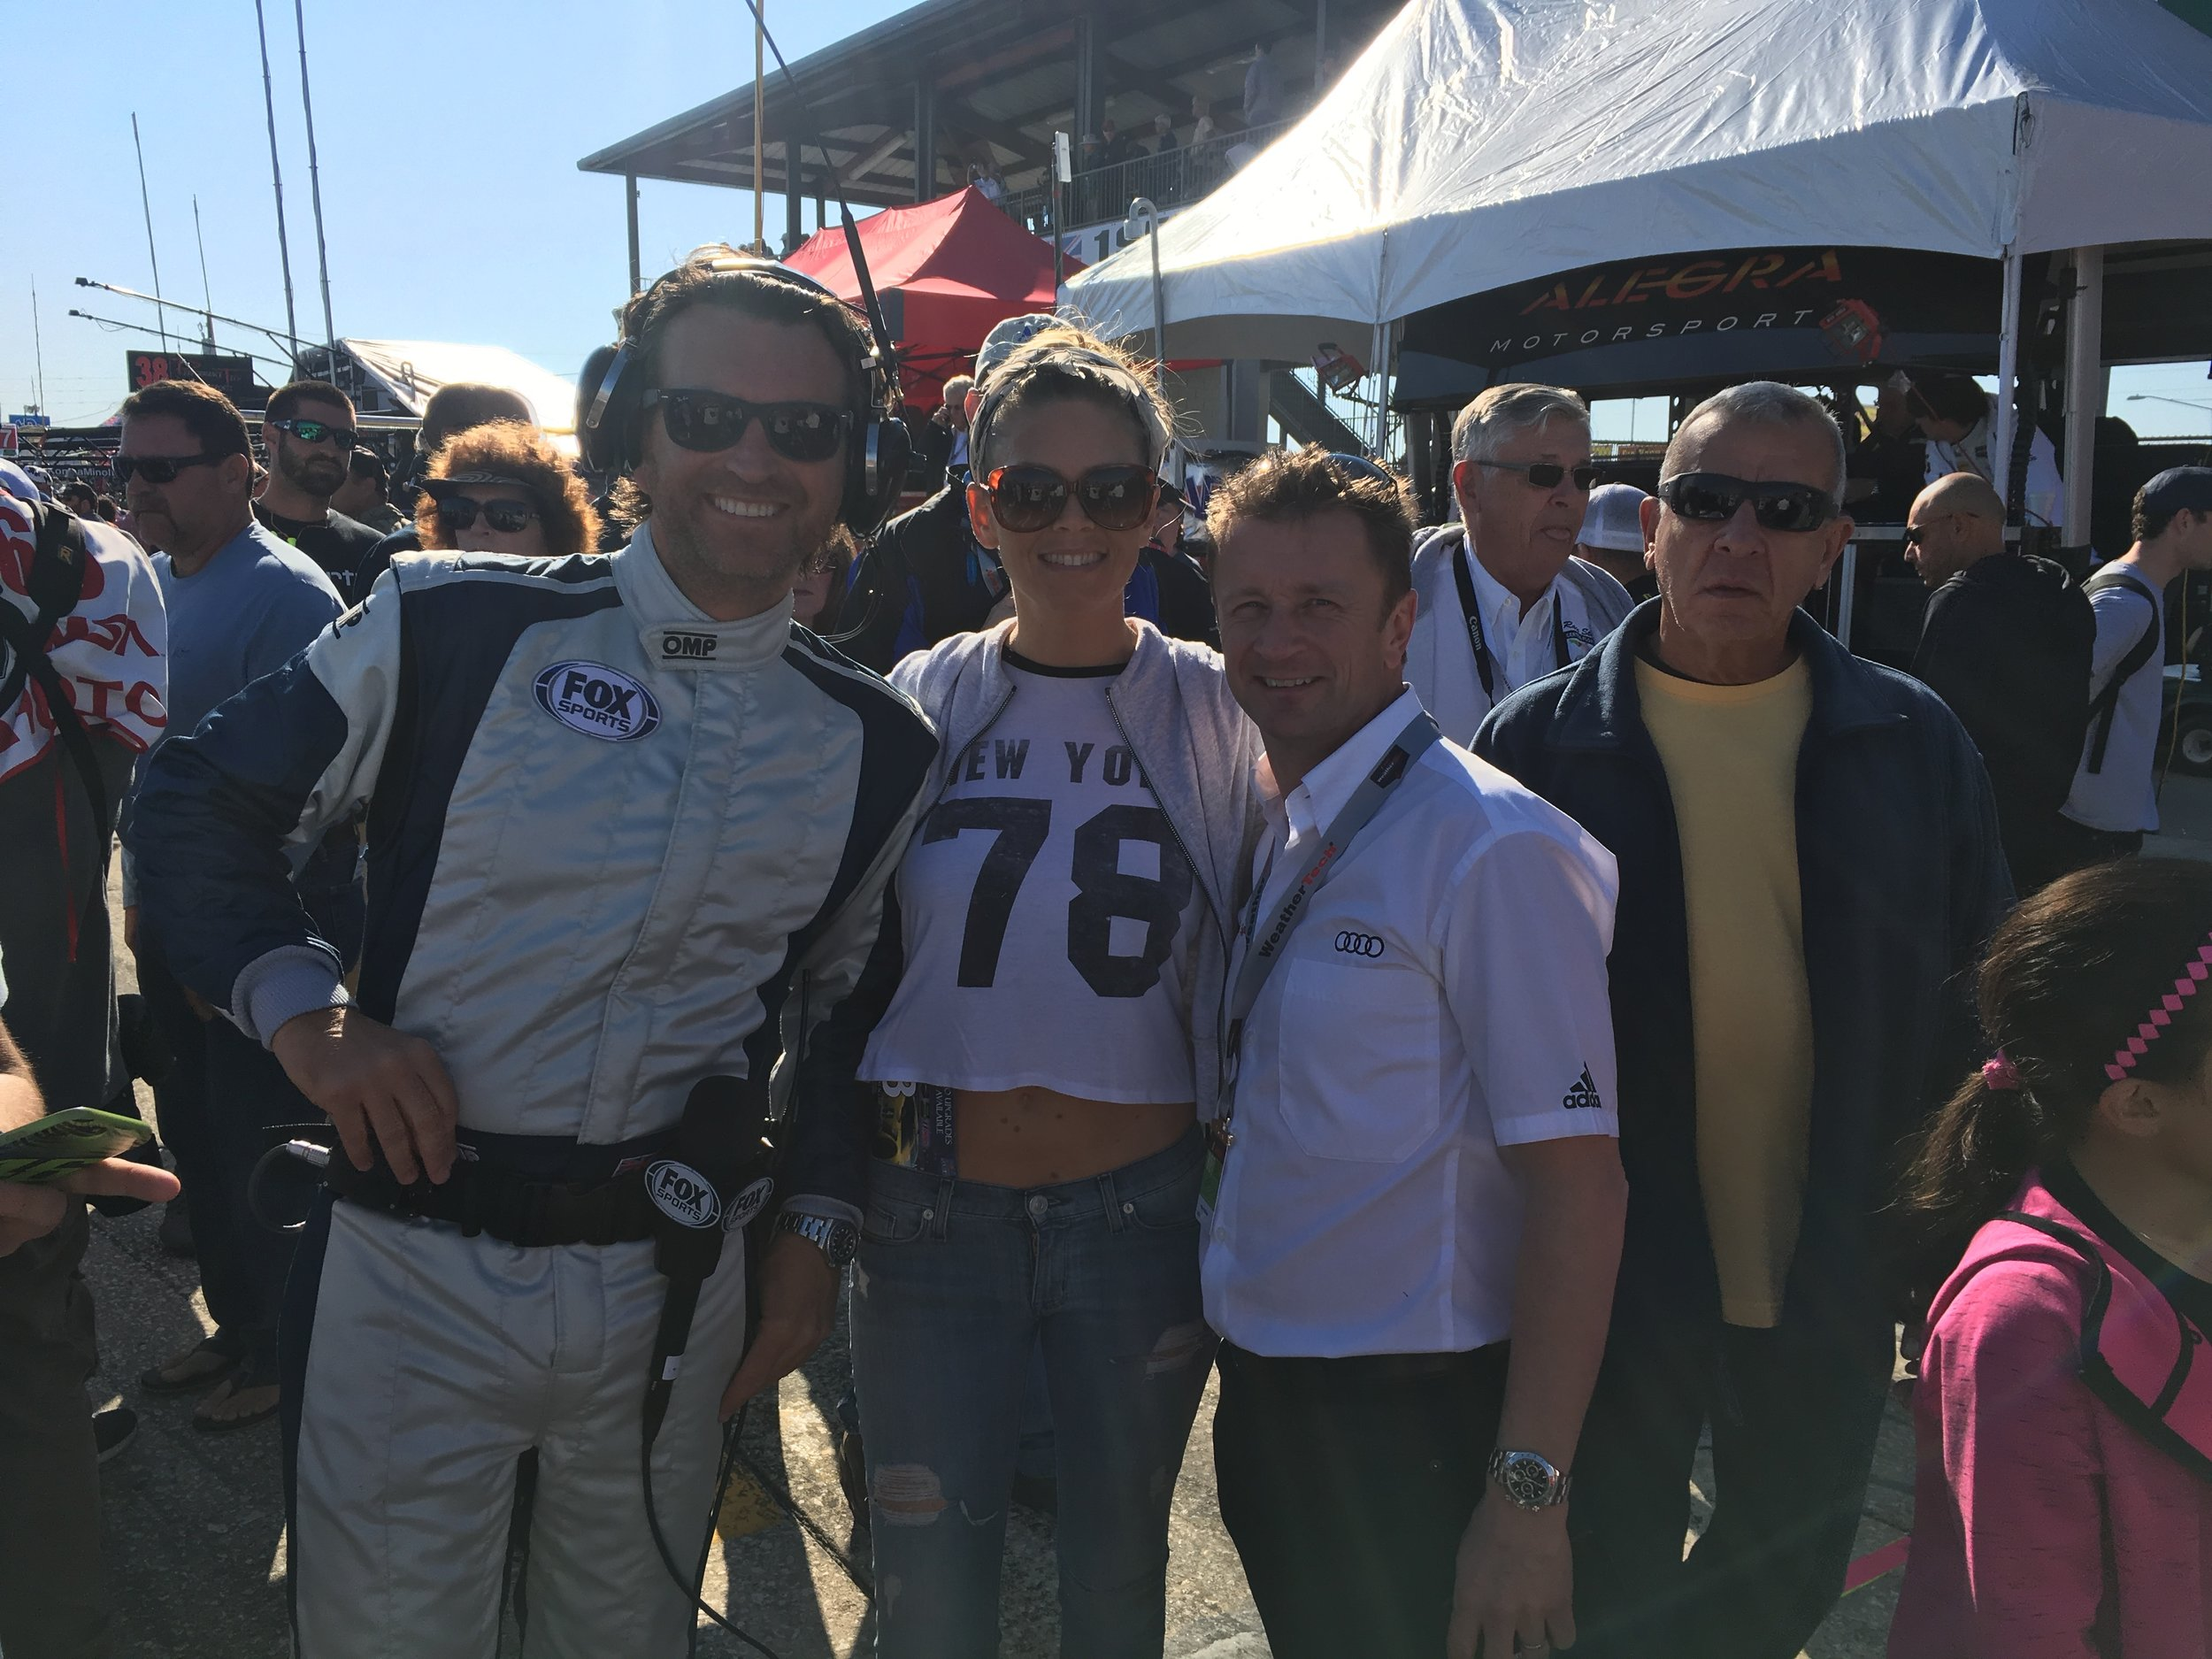 Found two of my favorite people to hang with in Pitlane just before the race. Alan McNish and Shannon! (the guy in the yellow isn't with us...)